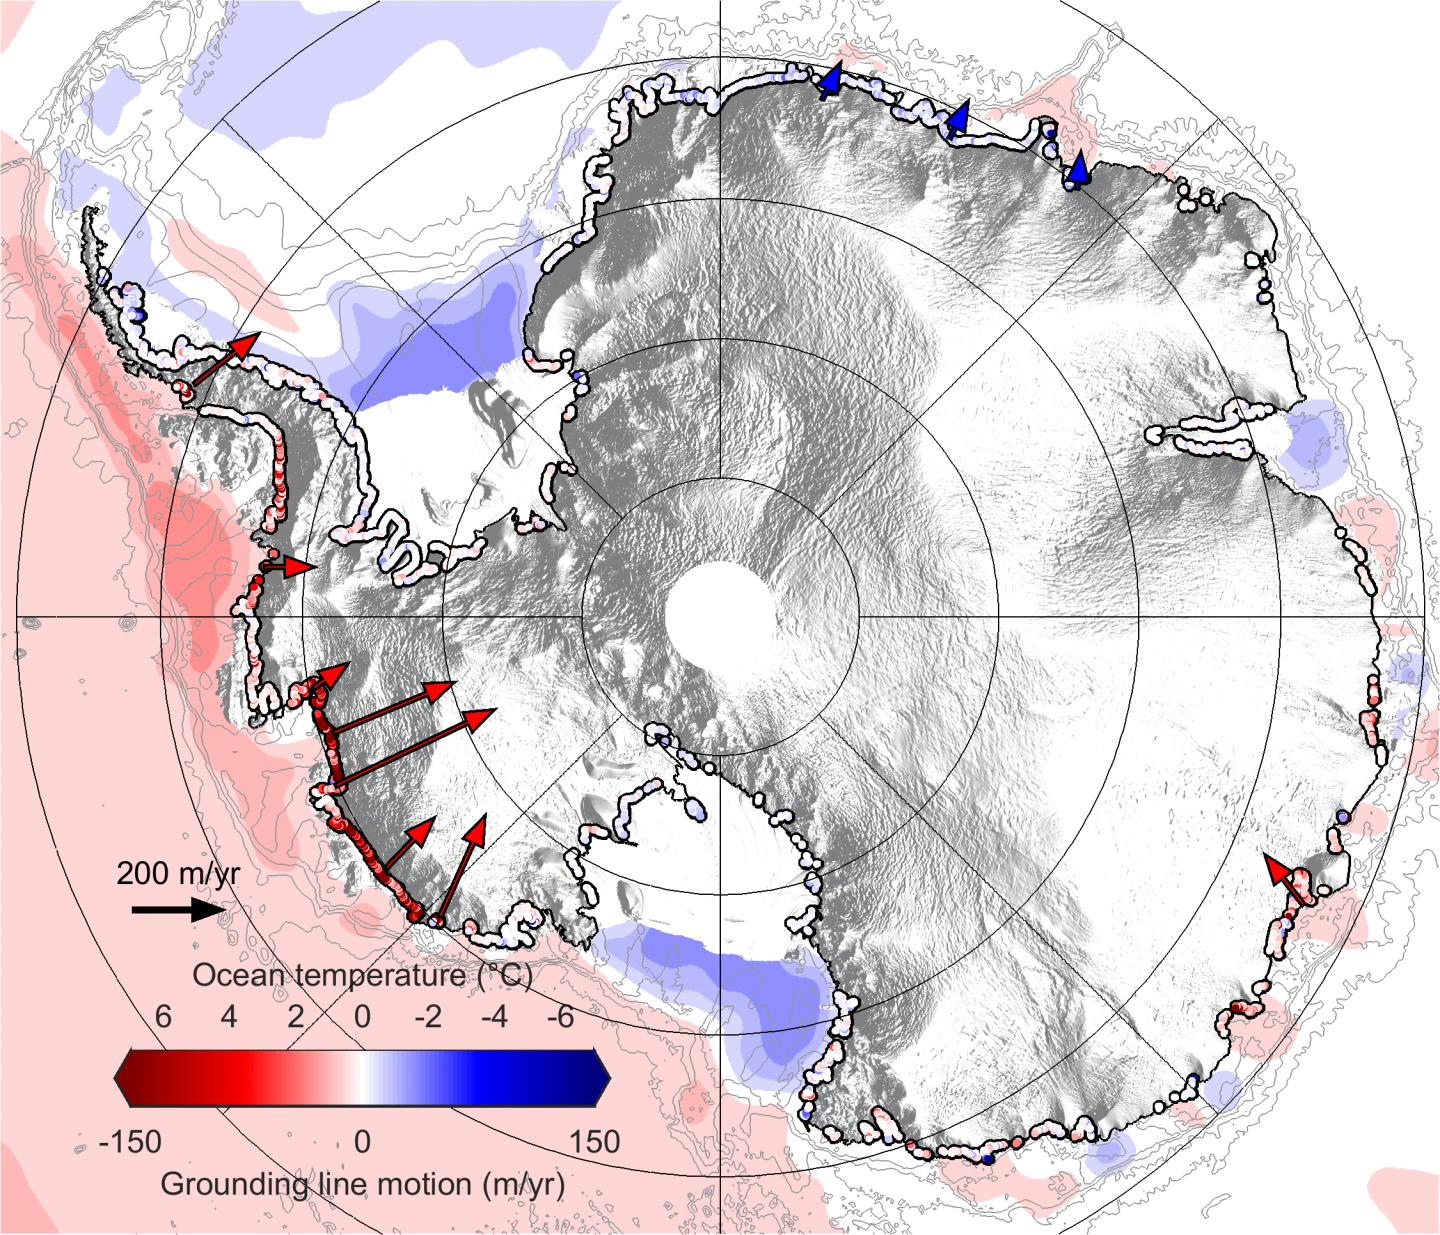 Climate Master Wiring Diagram What Happened Last Time It Was As Warm Its Going To Get Later Enlarge Map Of Antarctica Today Showing Rates Retreat 2010 2016 The Grounding Line Where Glaciers Lose Contact With Bedrock Underwater